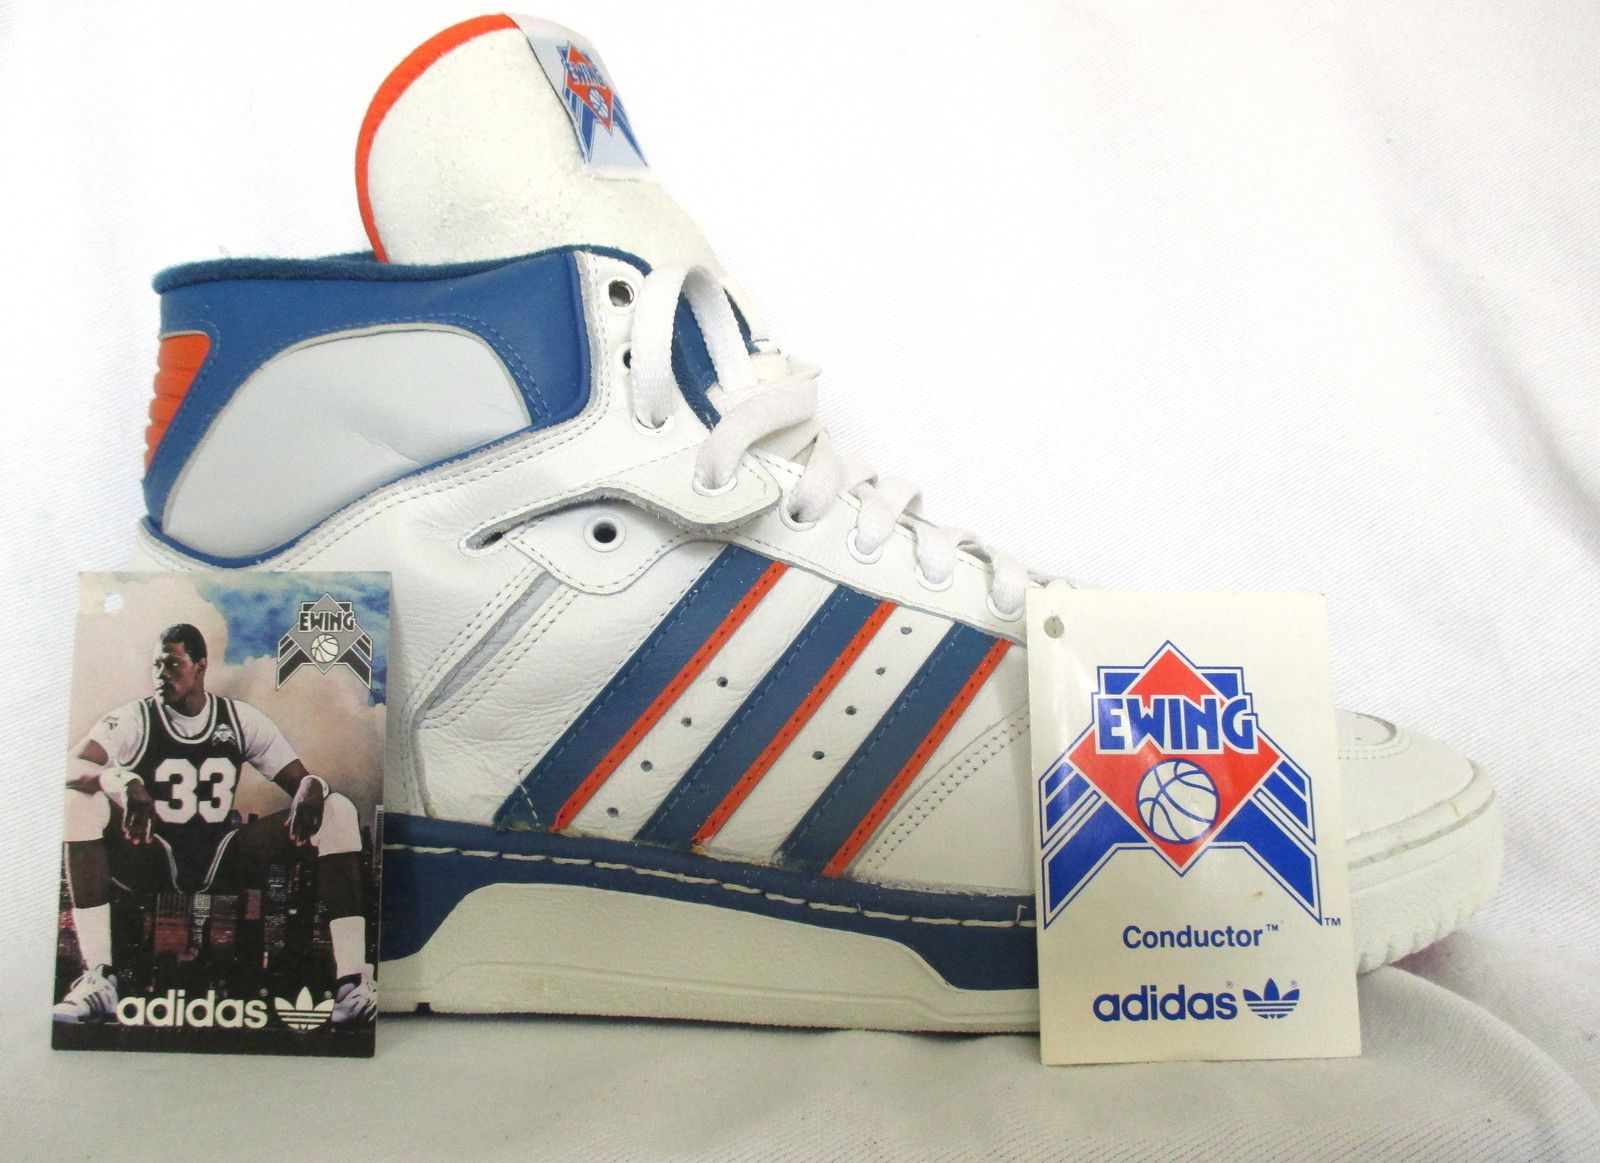 Original Vintage 1986 Patrick Ewing Adidas Conductor Shoes